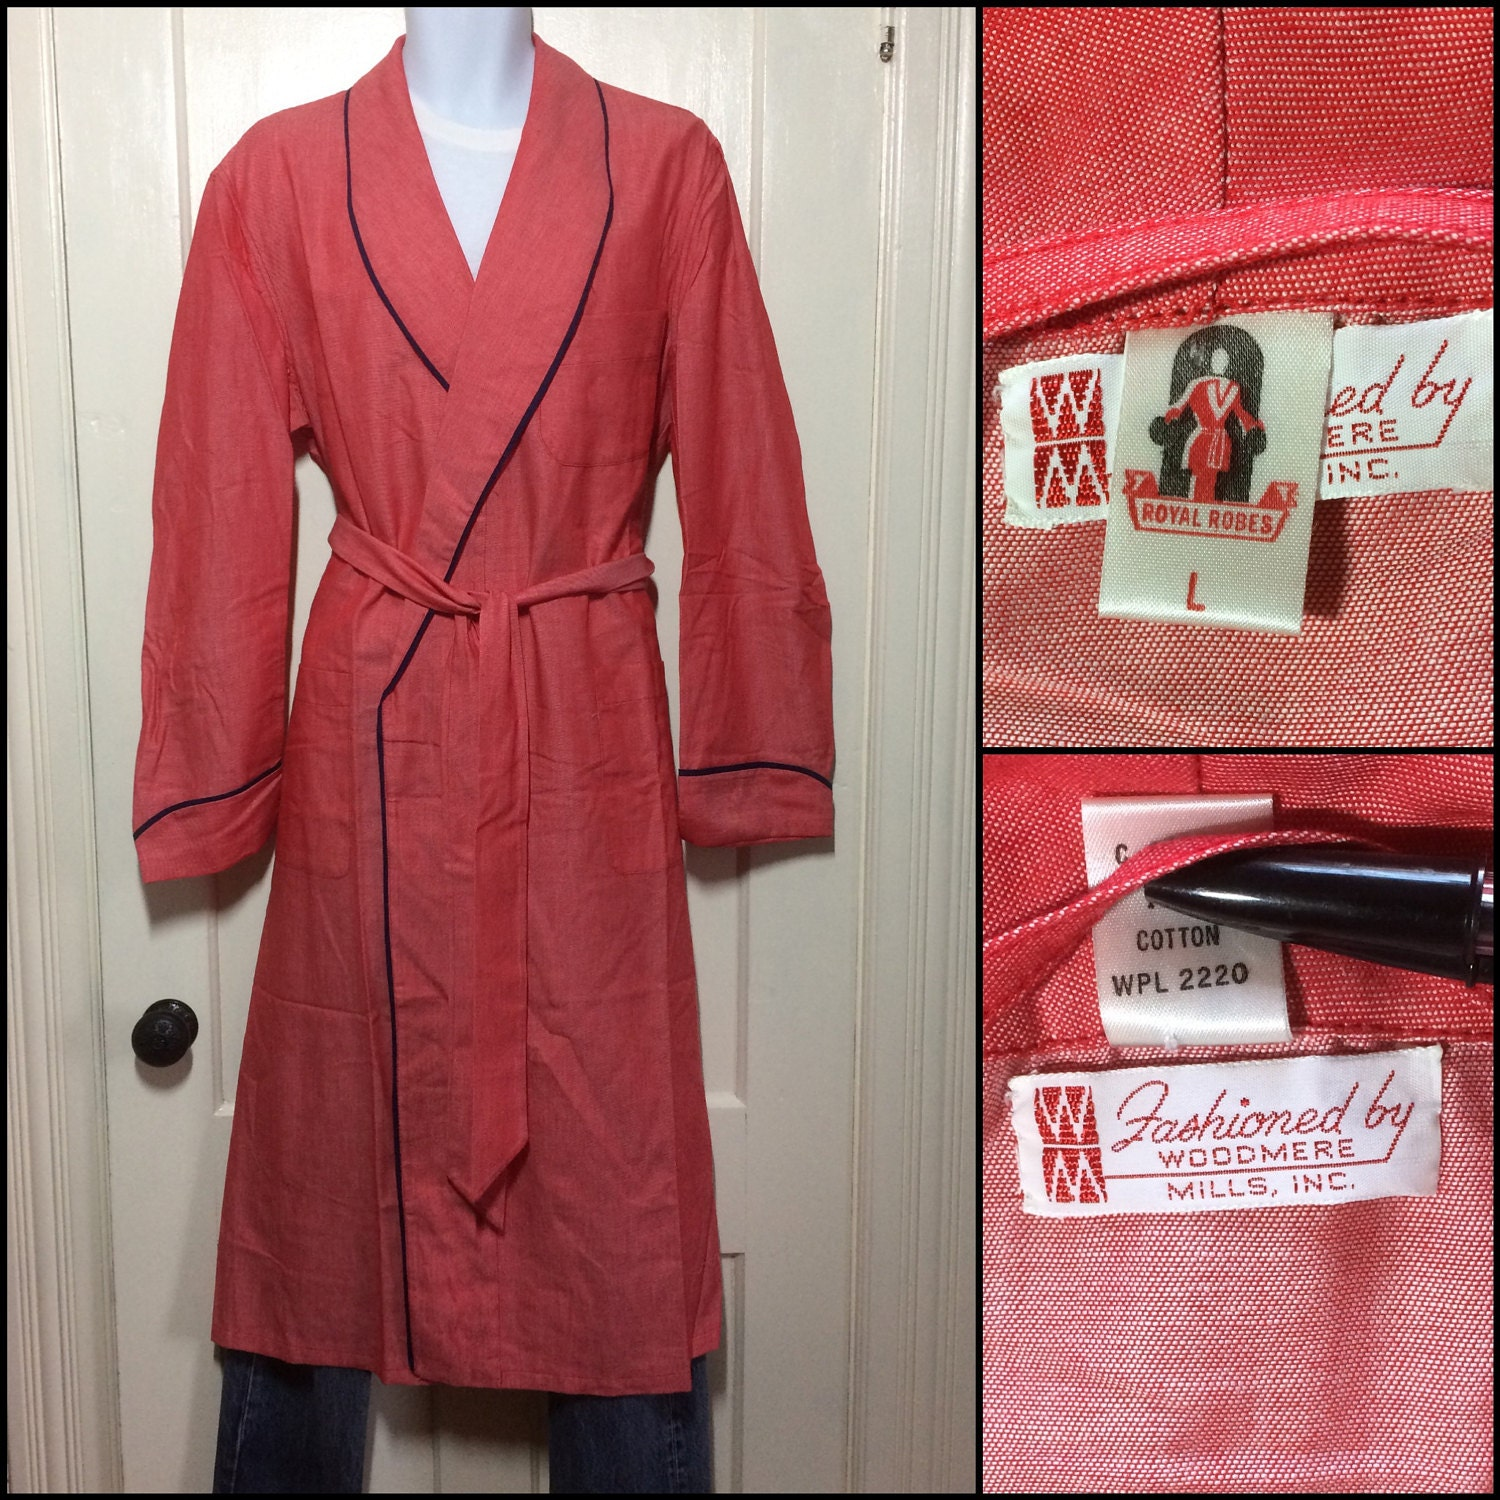 Deadstock red chambray robe by Royal Robes, 1950s vintage